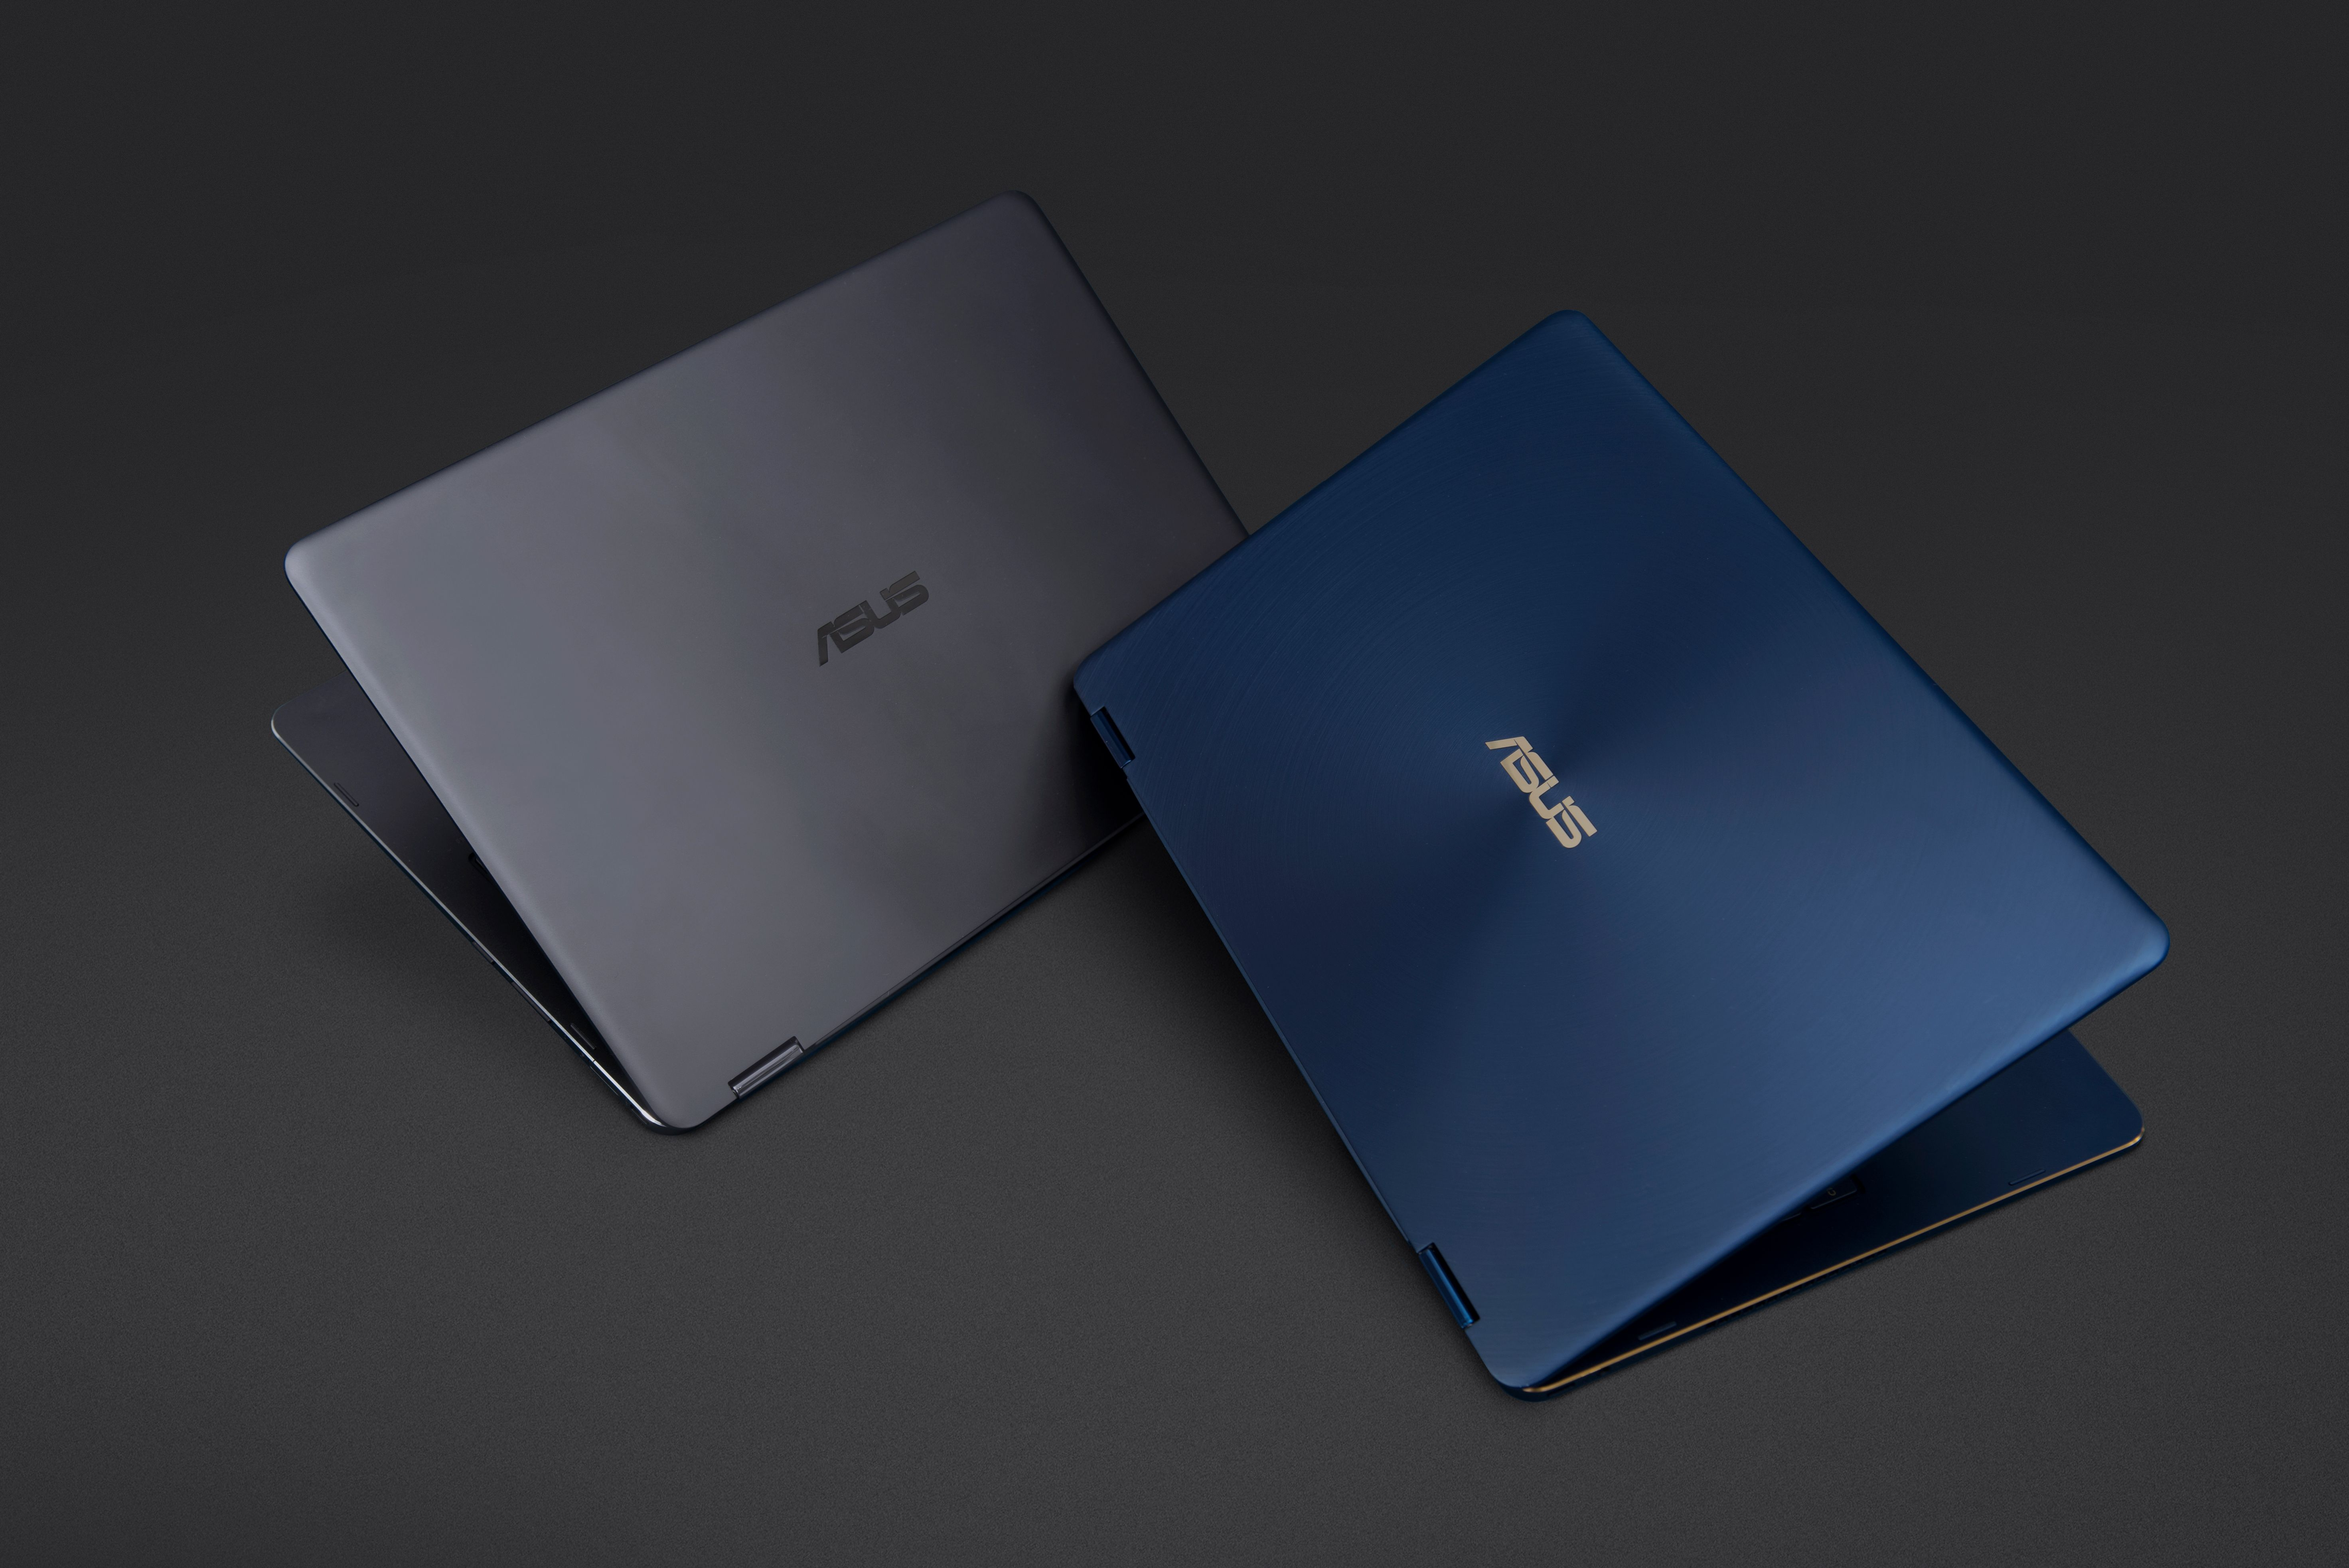 Asus Zenbook Flip S Ux370 Product Picture Asus Apple Products Nordic